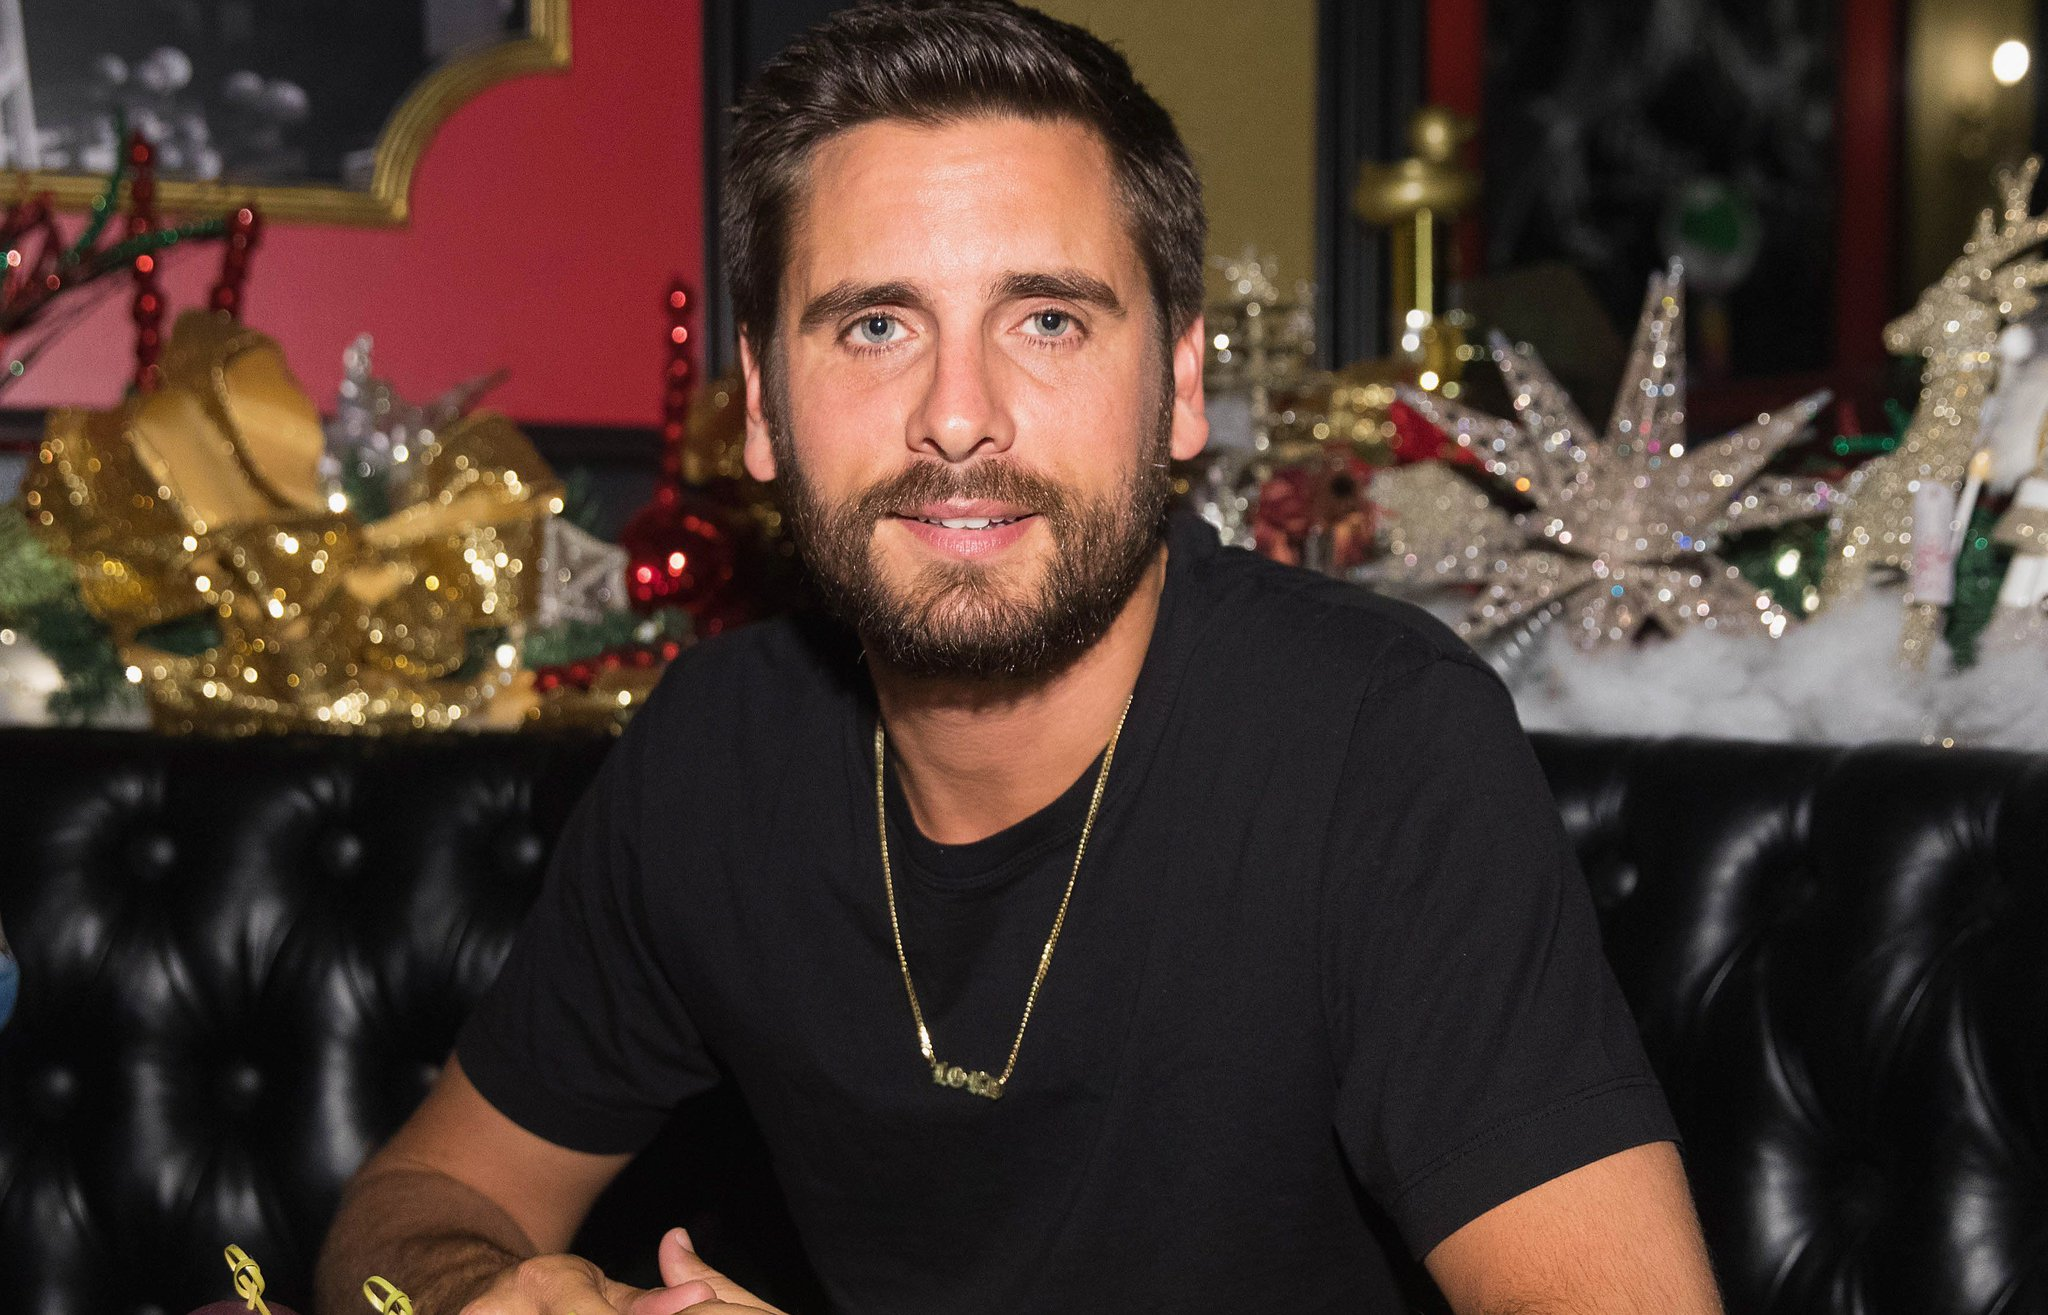 Did Scott Disick just low-key confirm Khloé Kardashian is pregnant? https://t.co/5n1a0ne8ei https://t.co/Wj6KUIJeLa